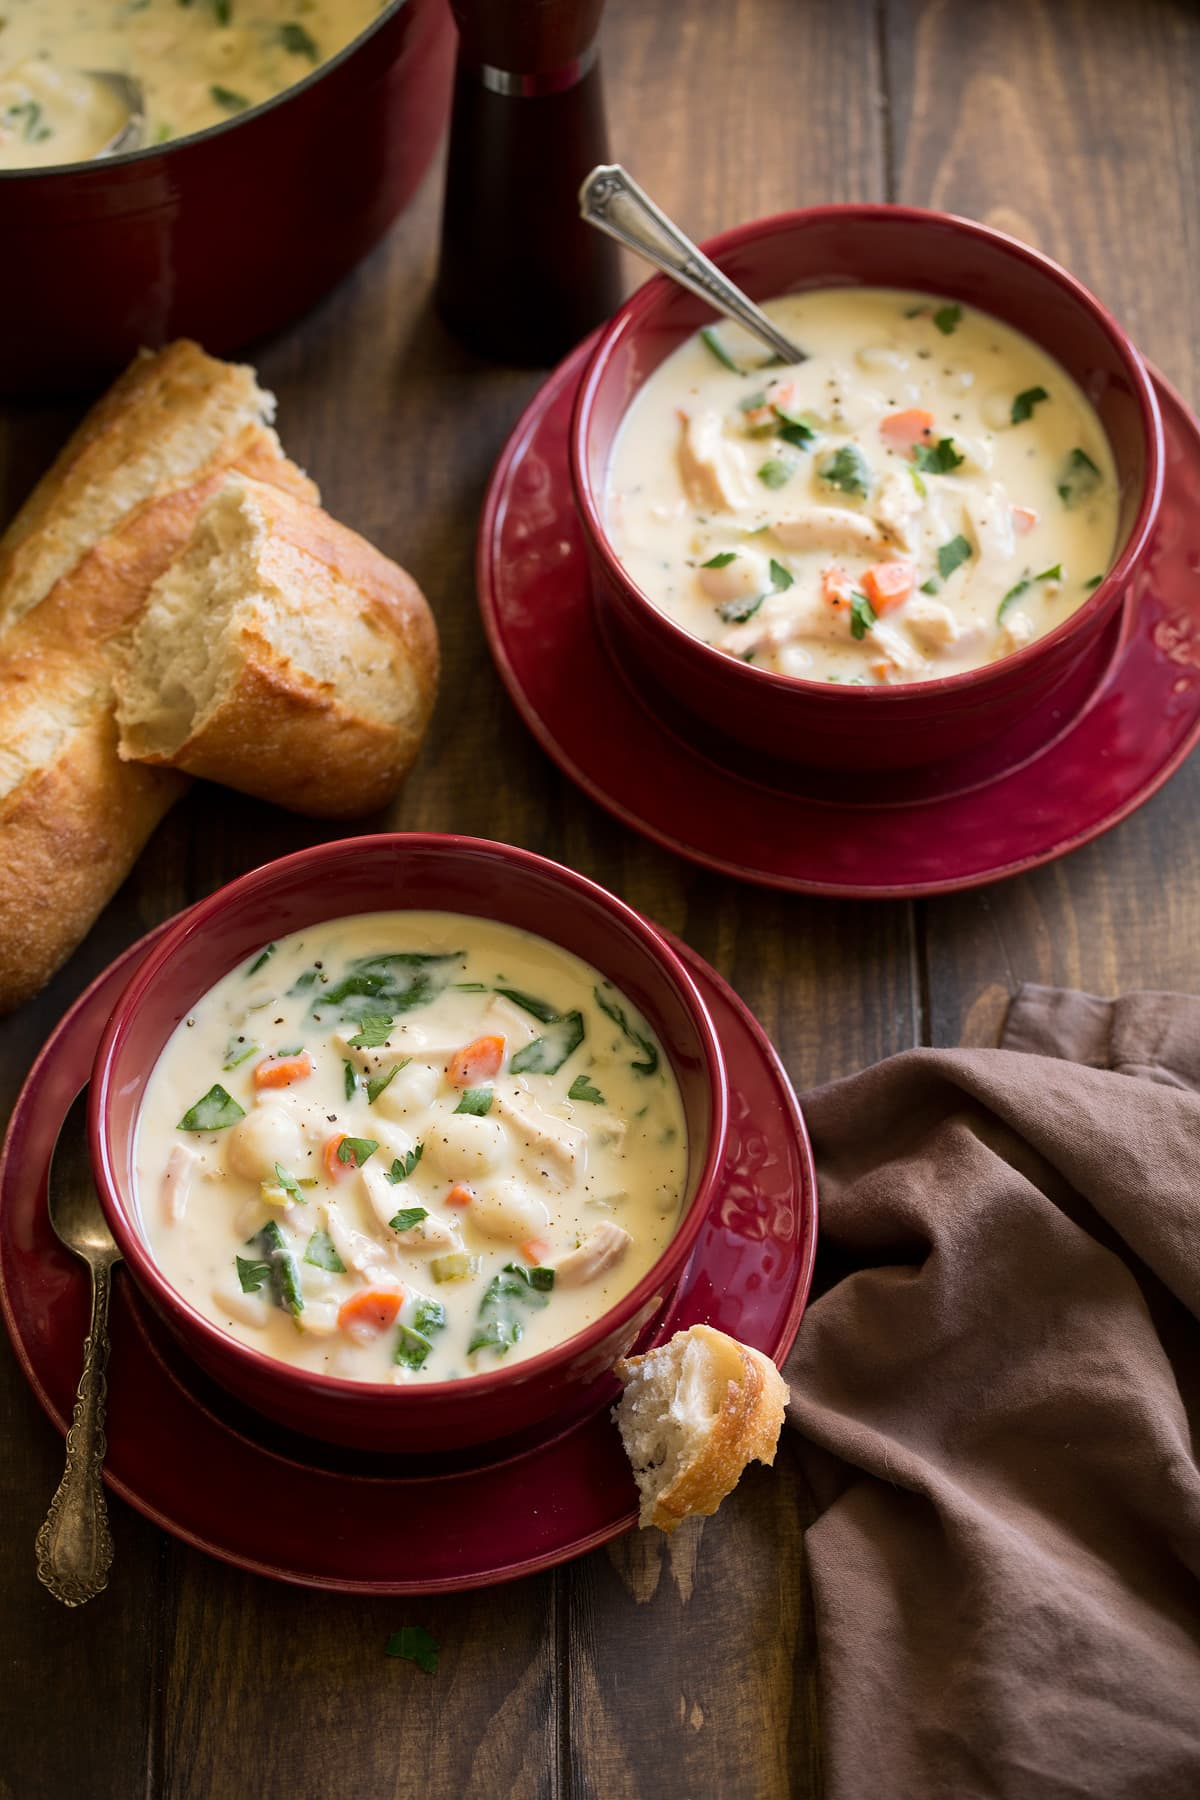 Two servings of creamy chicken gnocchi soup.